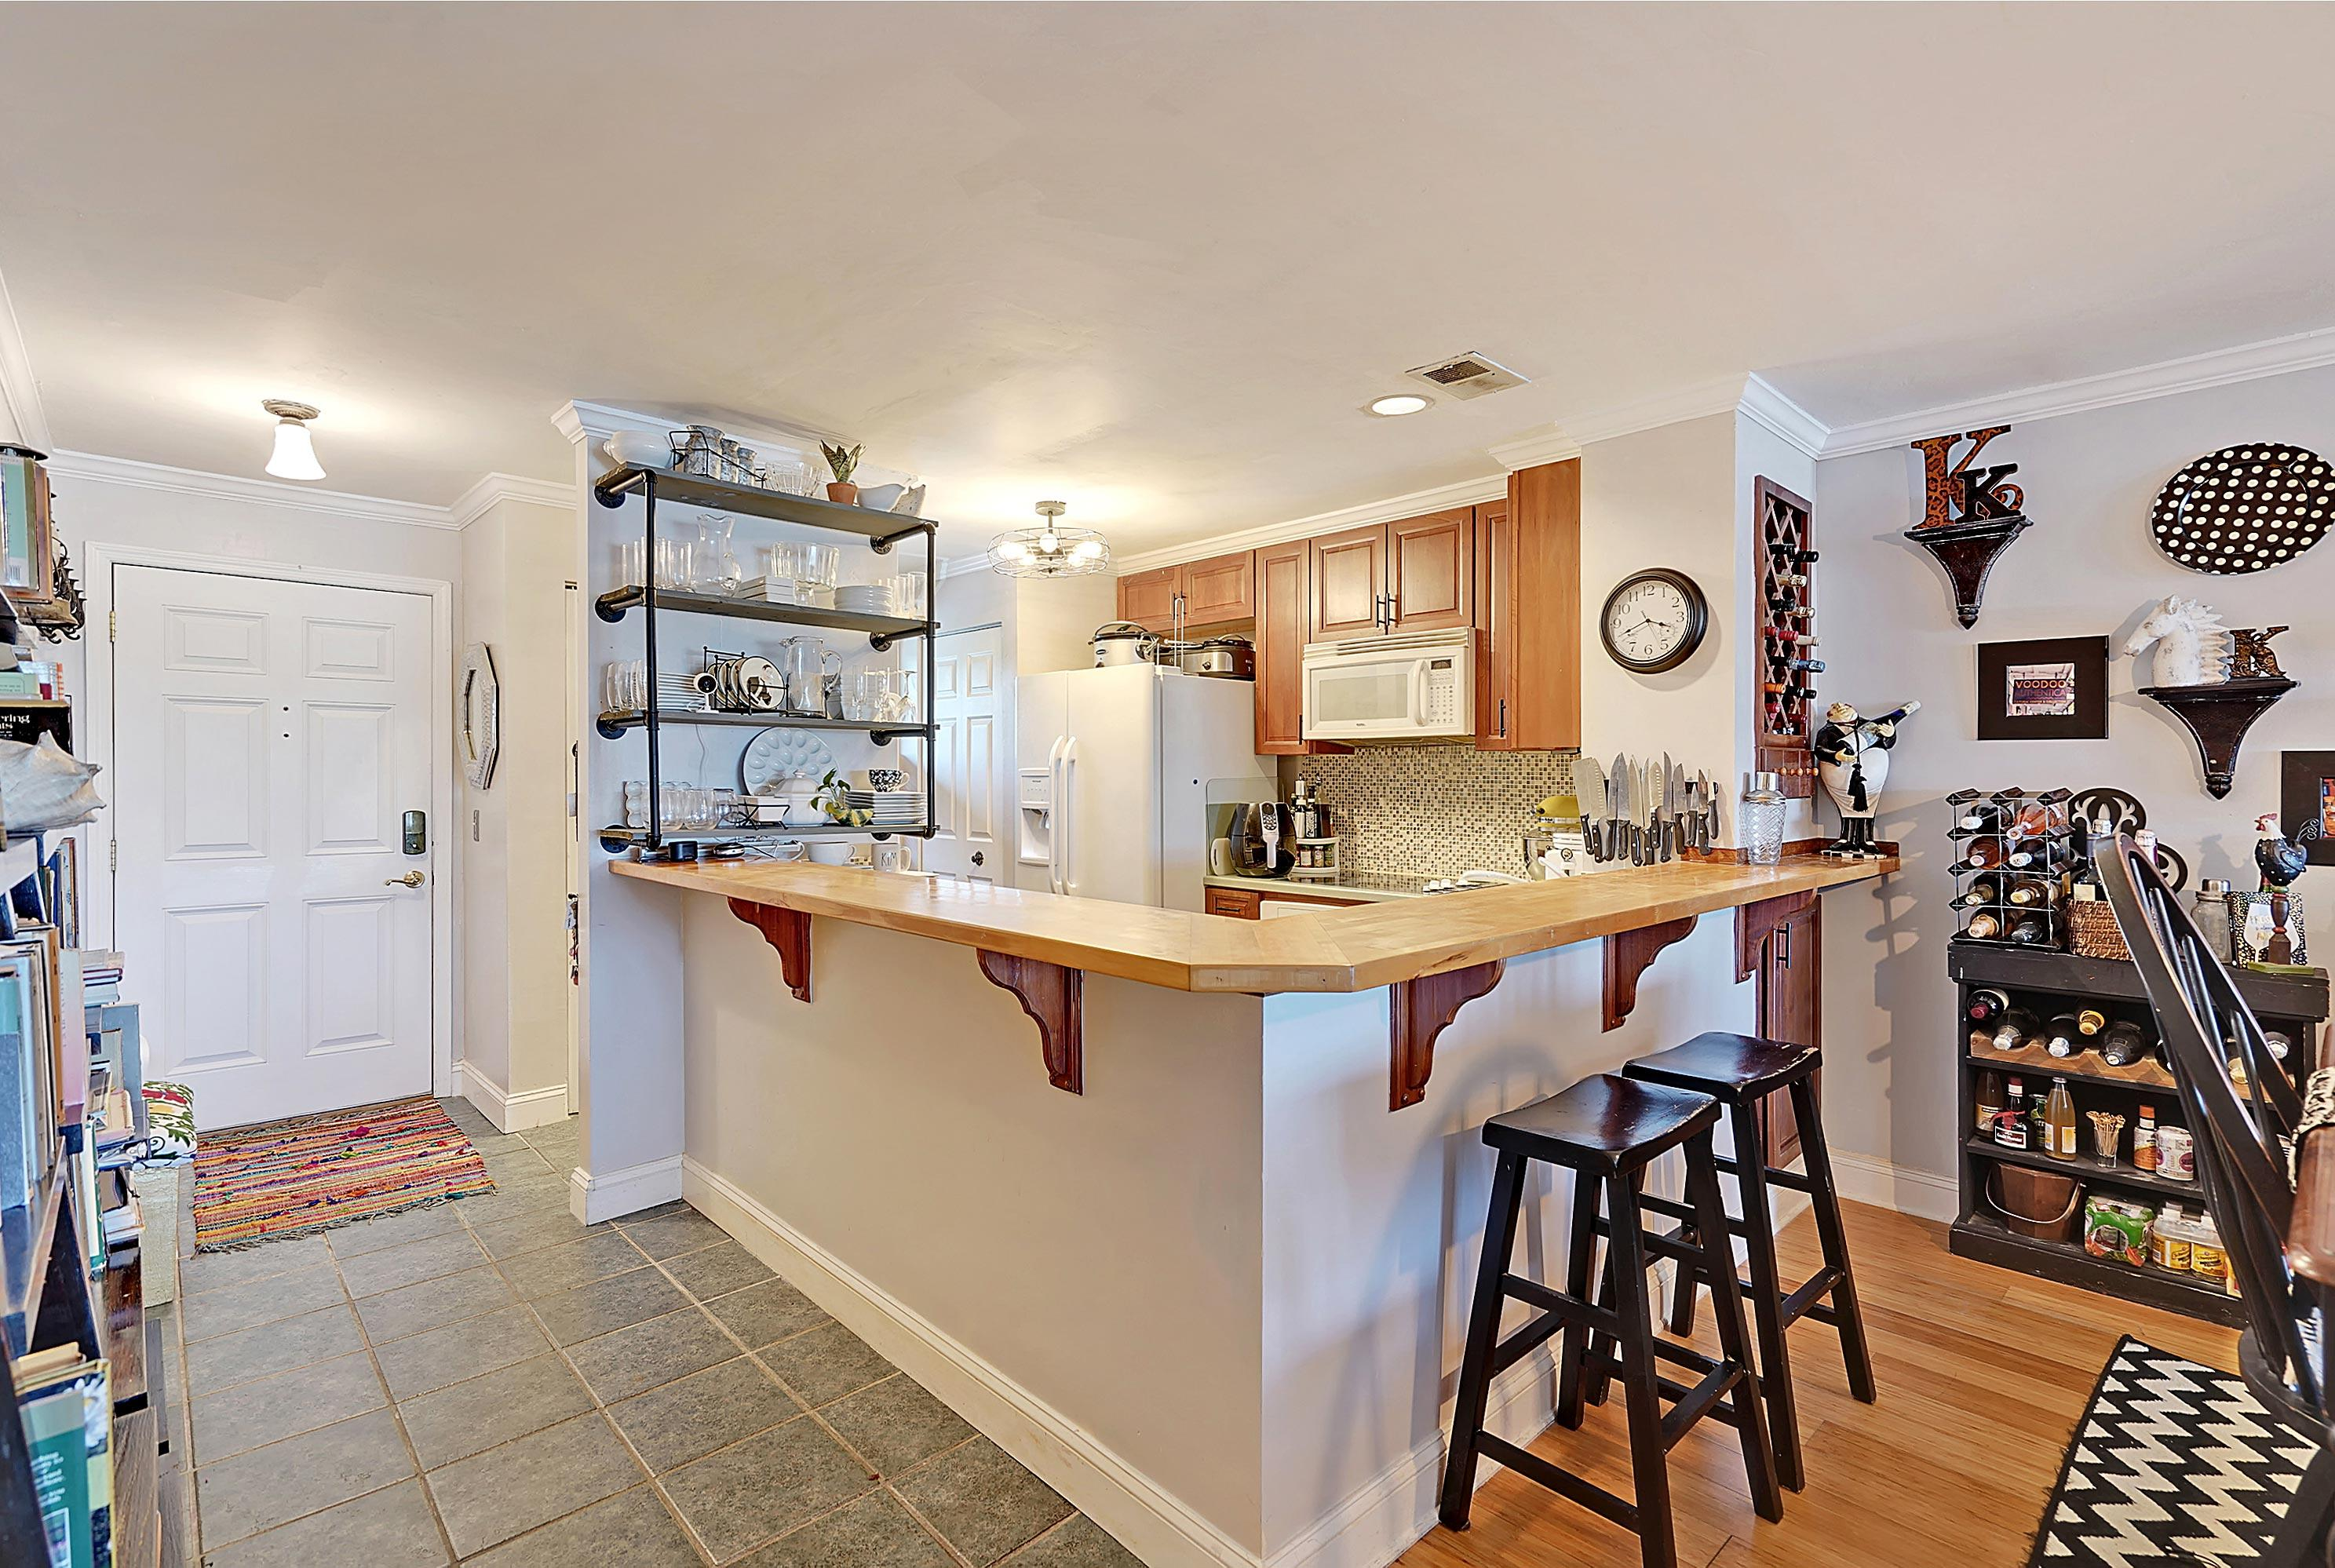 Mariners Cay Homes For Sale - 63 Mariners Cay, Folly Beach, SC - 32